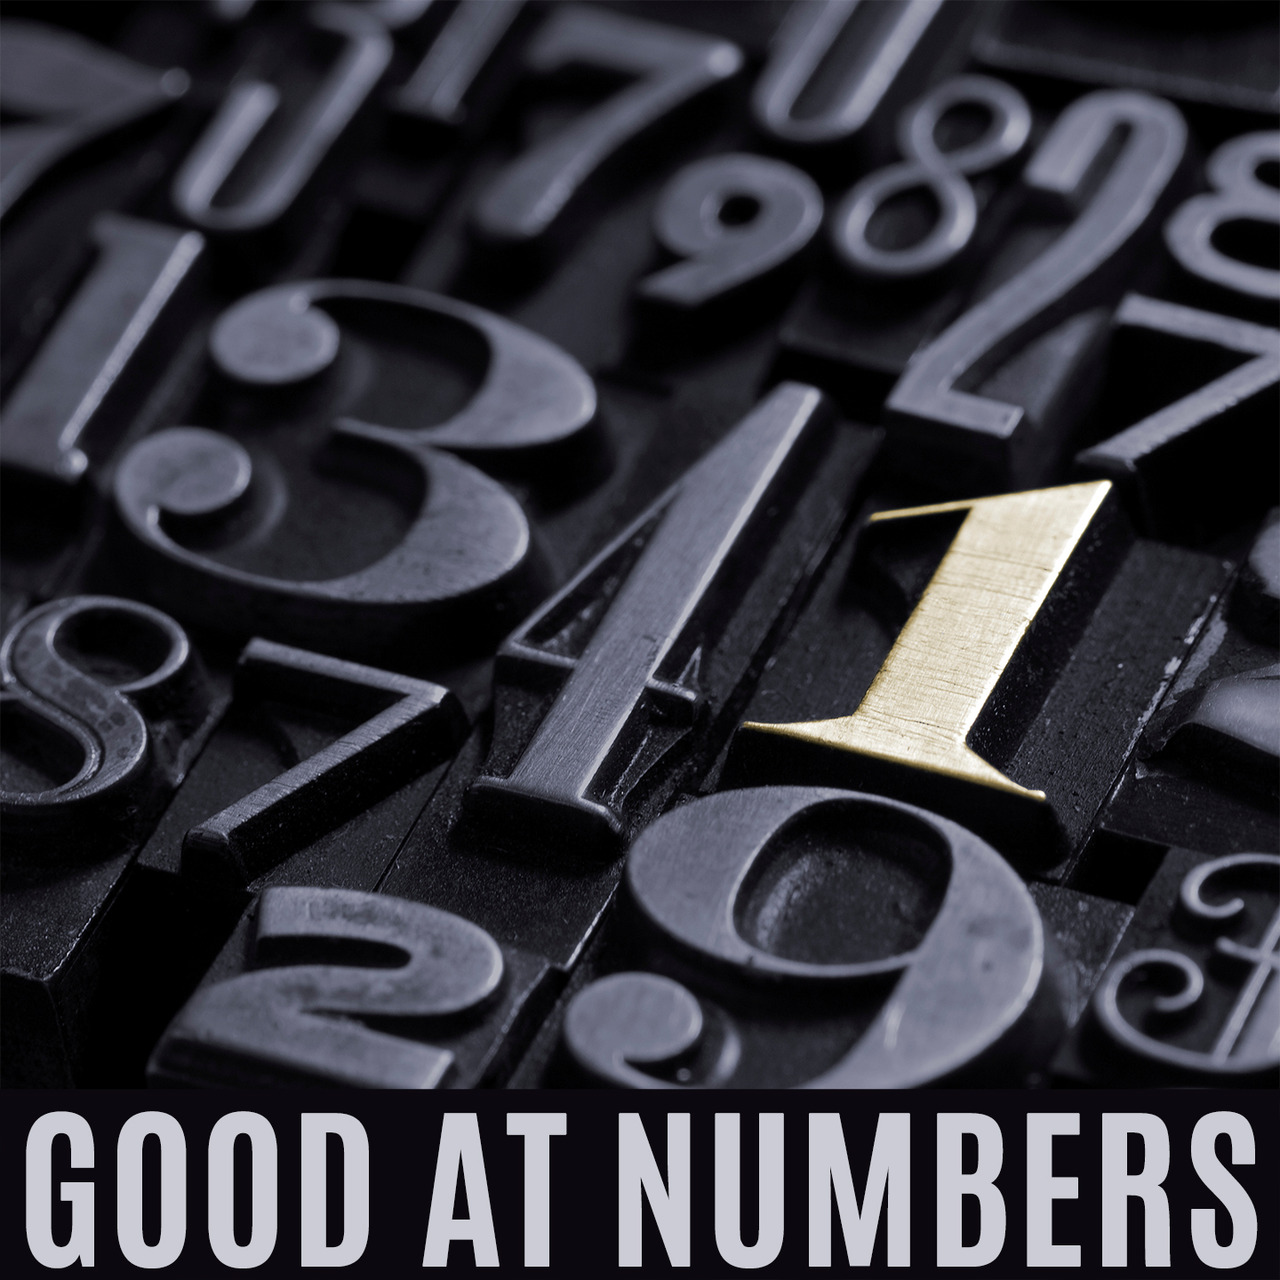 Good At Numbers by Rafael Benatar